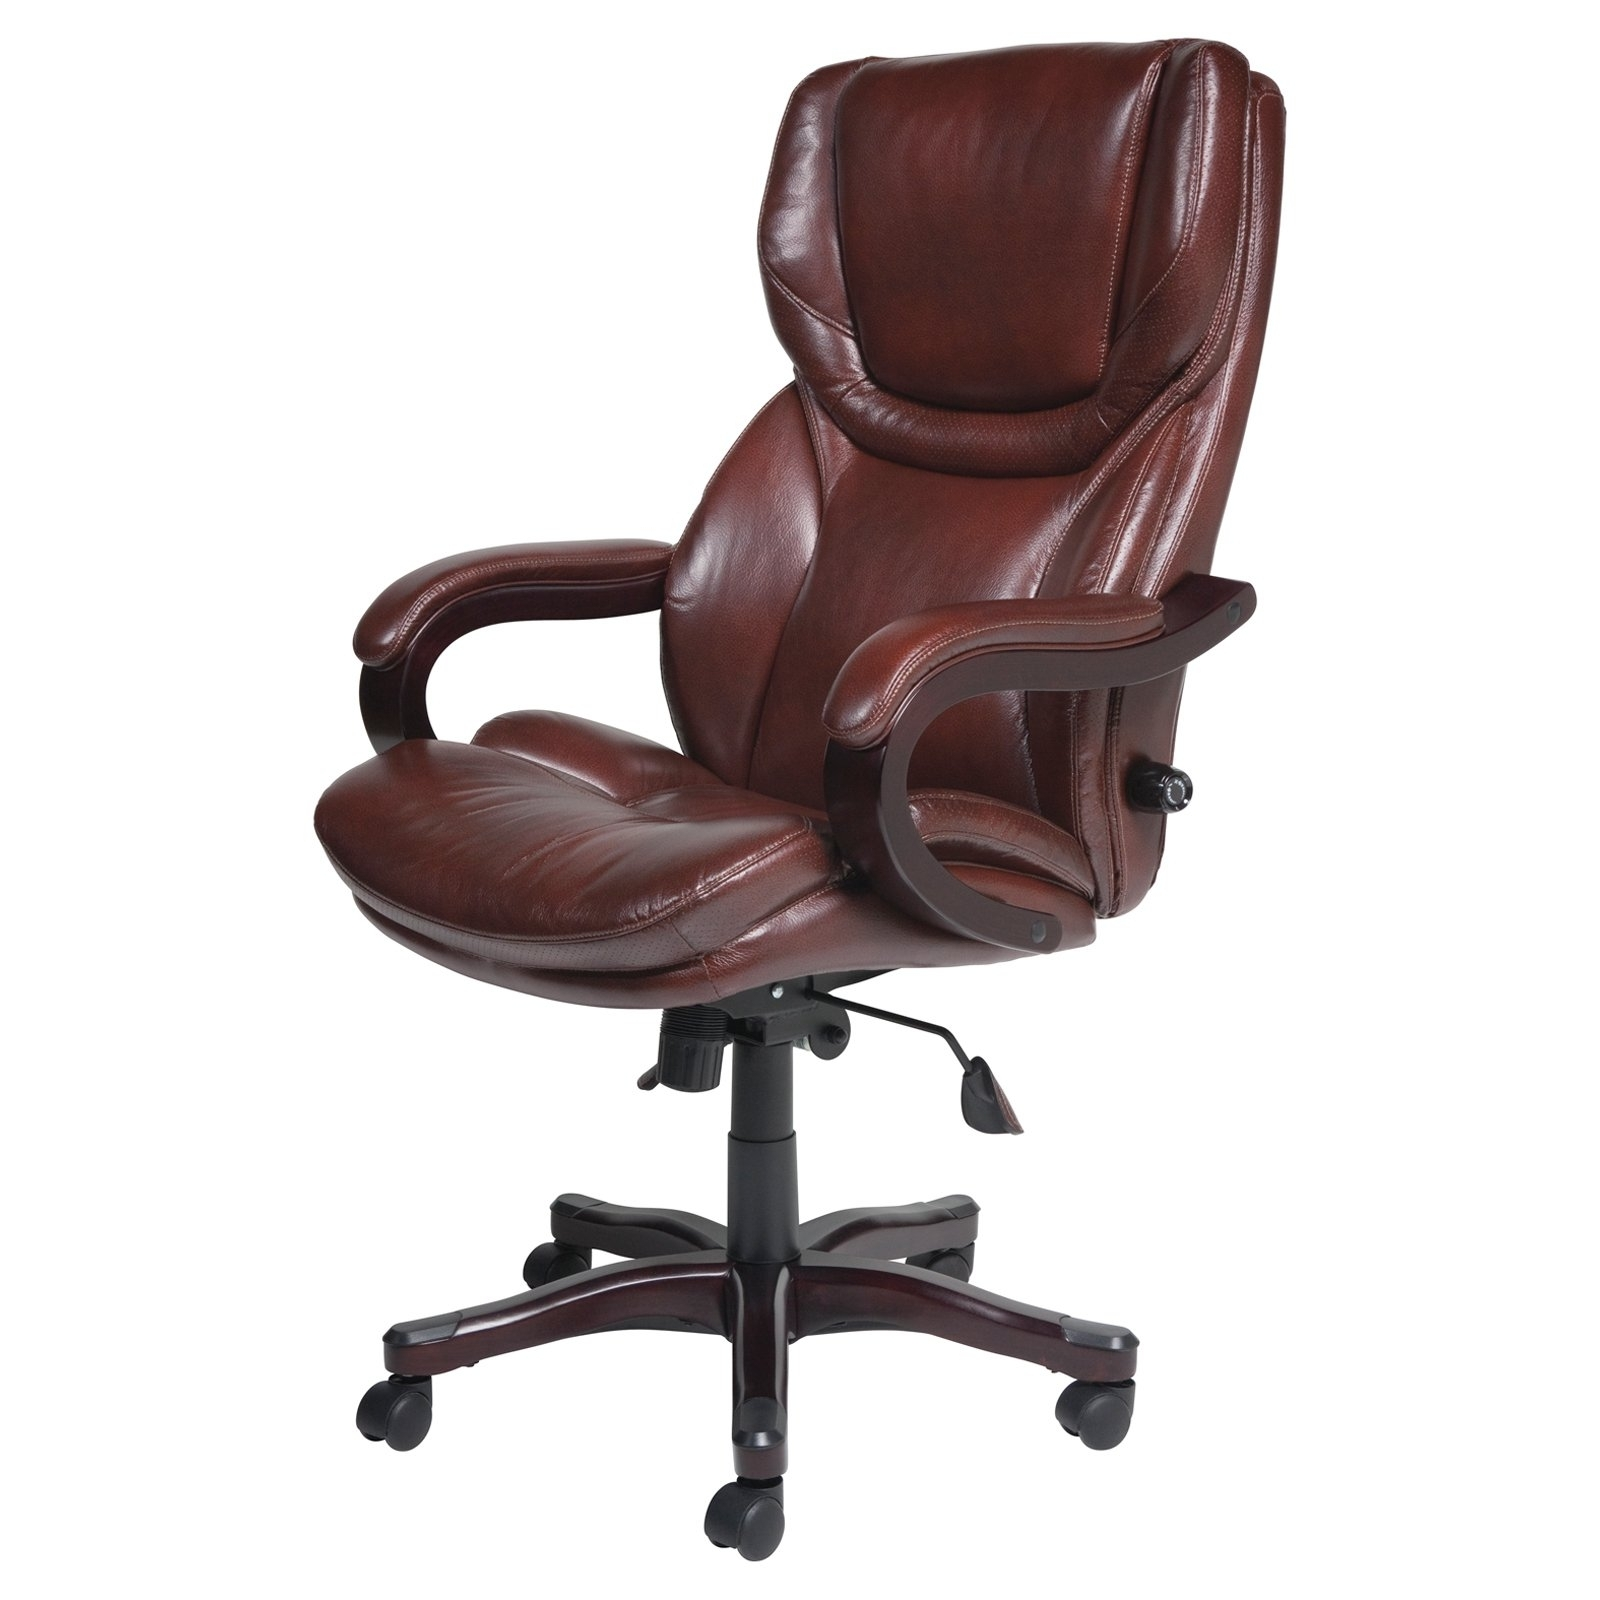 2019 Executive Office Chairs With Back Support Regarding Chair : Ergonomic Black Leather Executive Office Chair Verona (View 1 of 20)